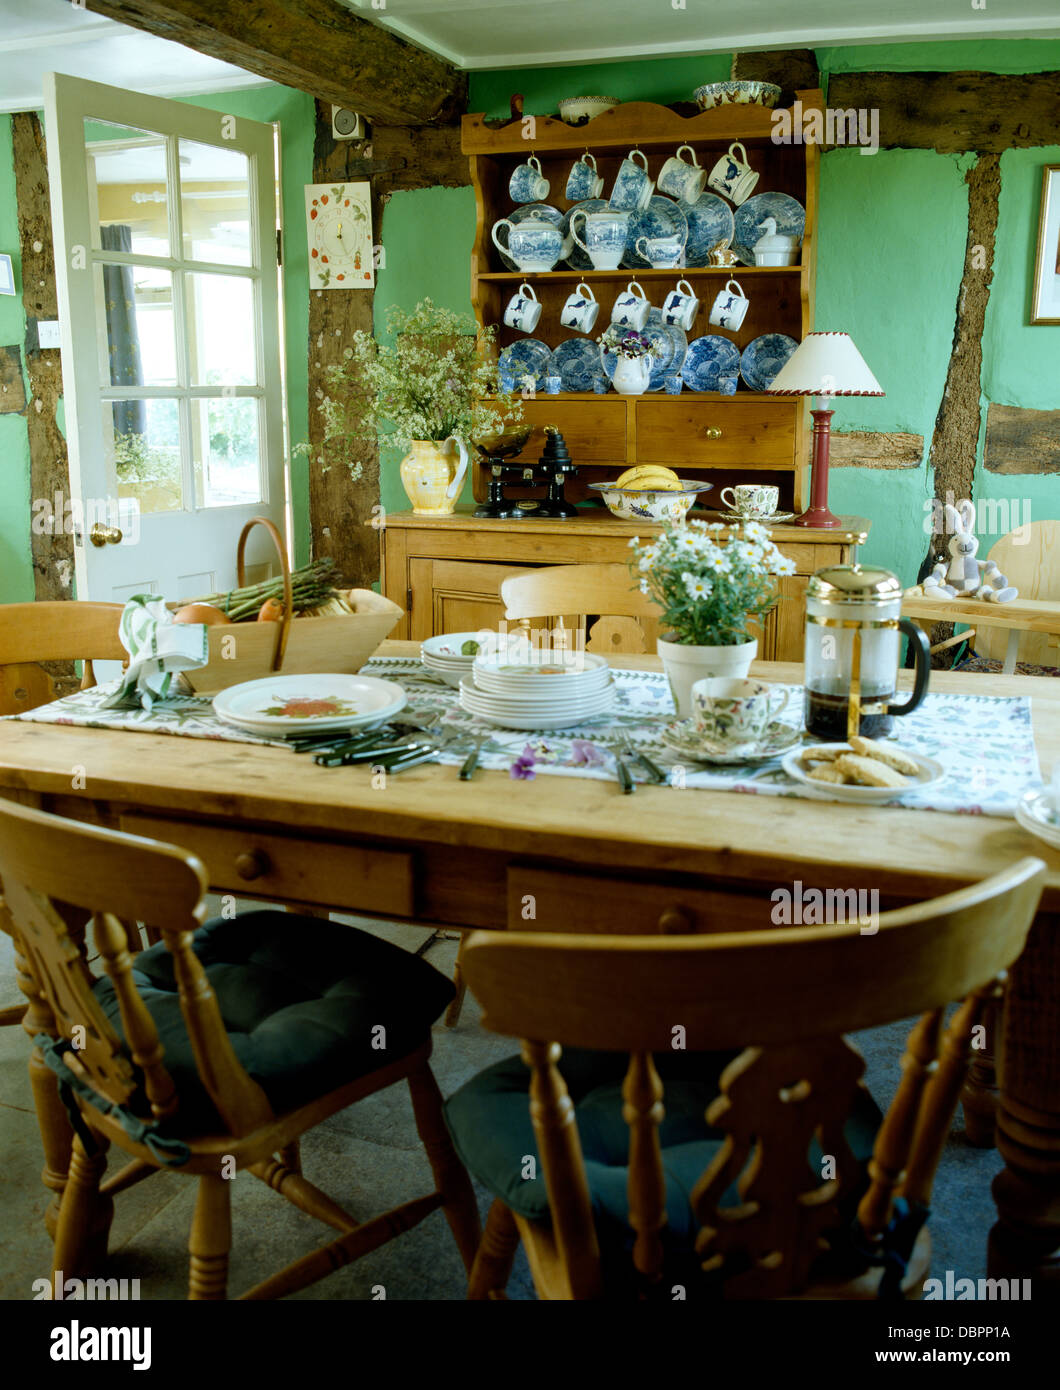 Pine Chairs At Pine Table Set For Breakfast In Pale Green Country Dining  Room With Blue+white China On Pine Dresser